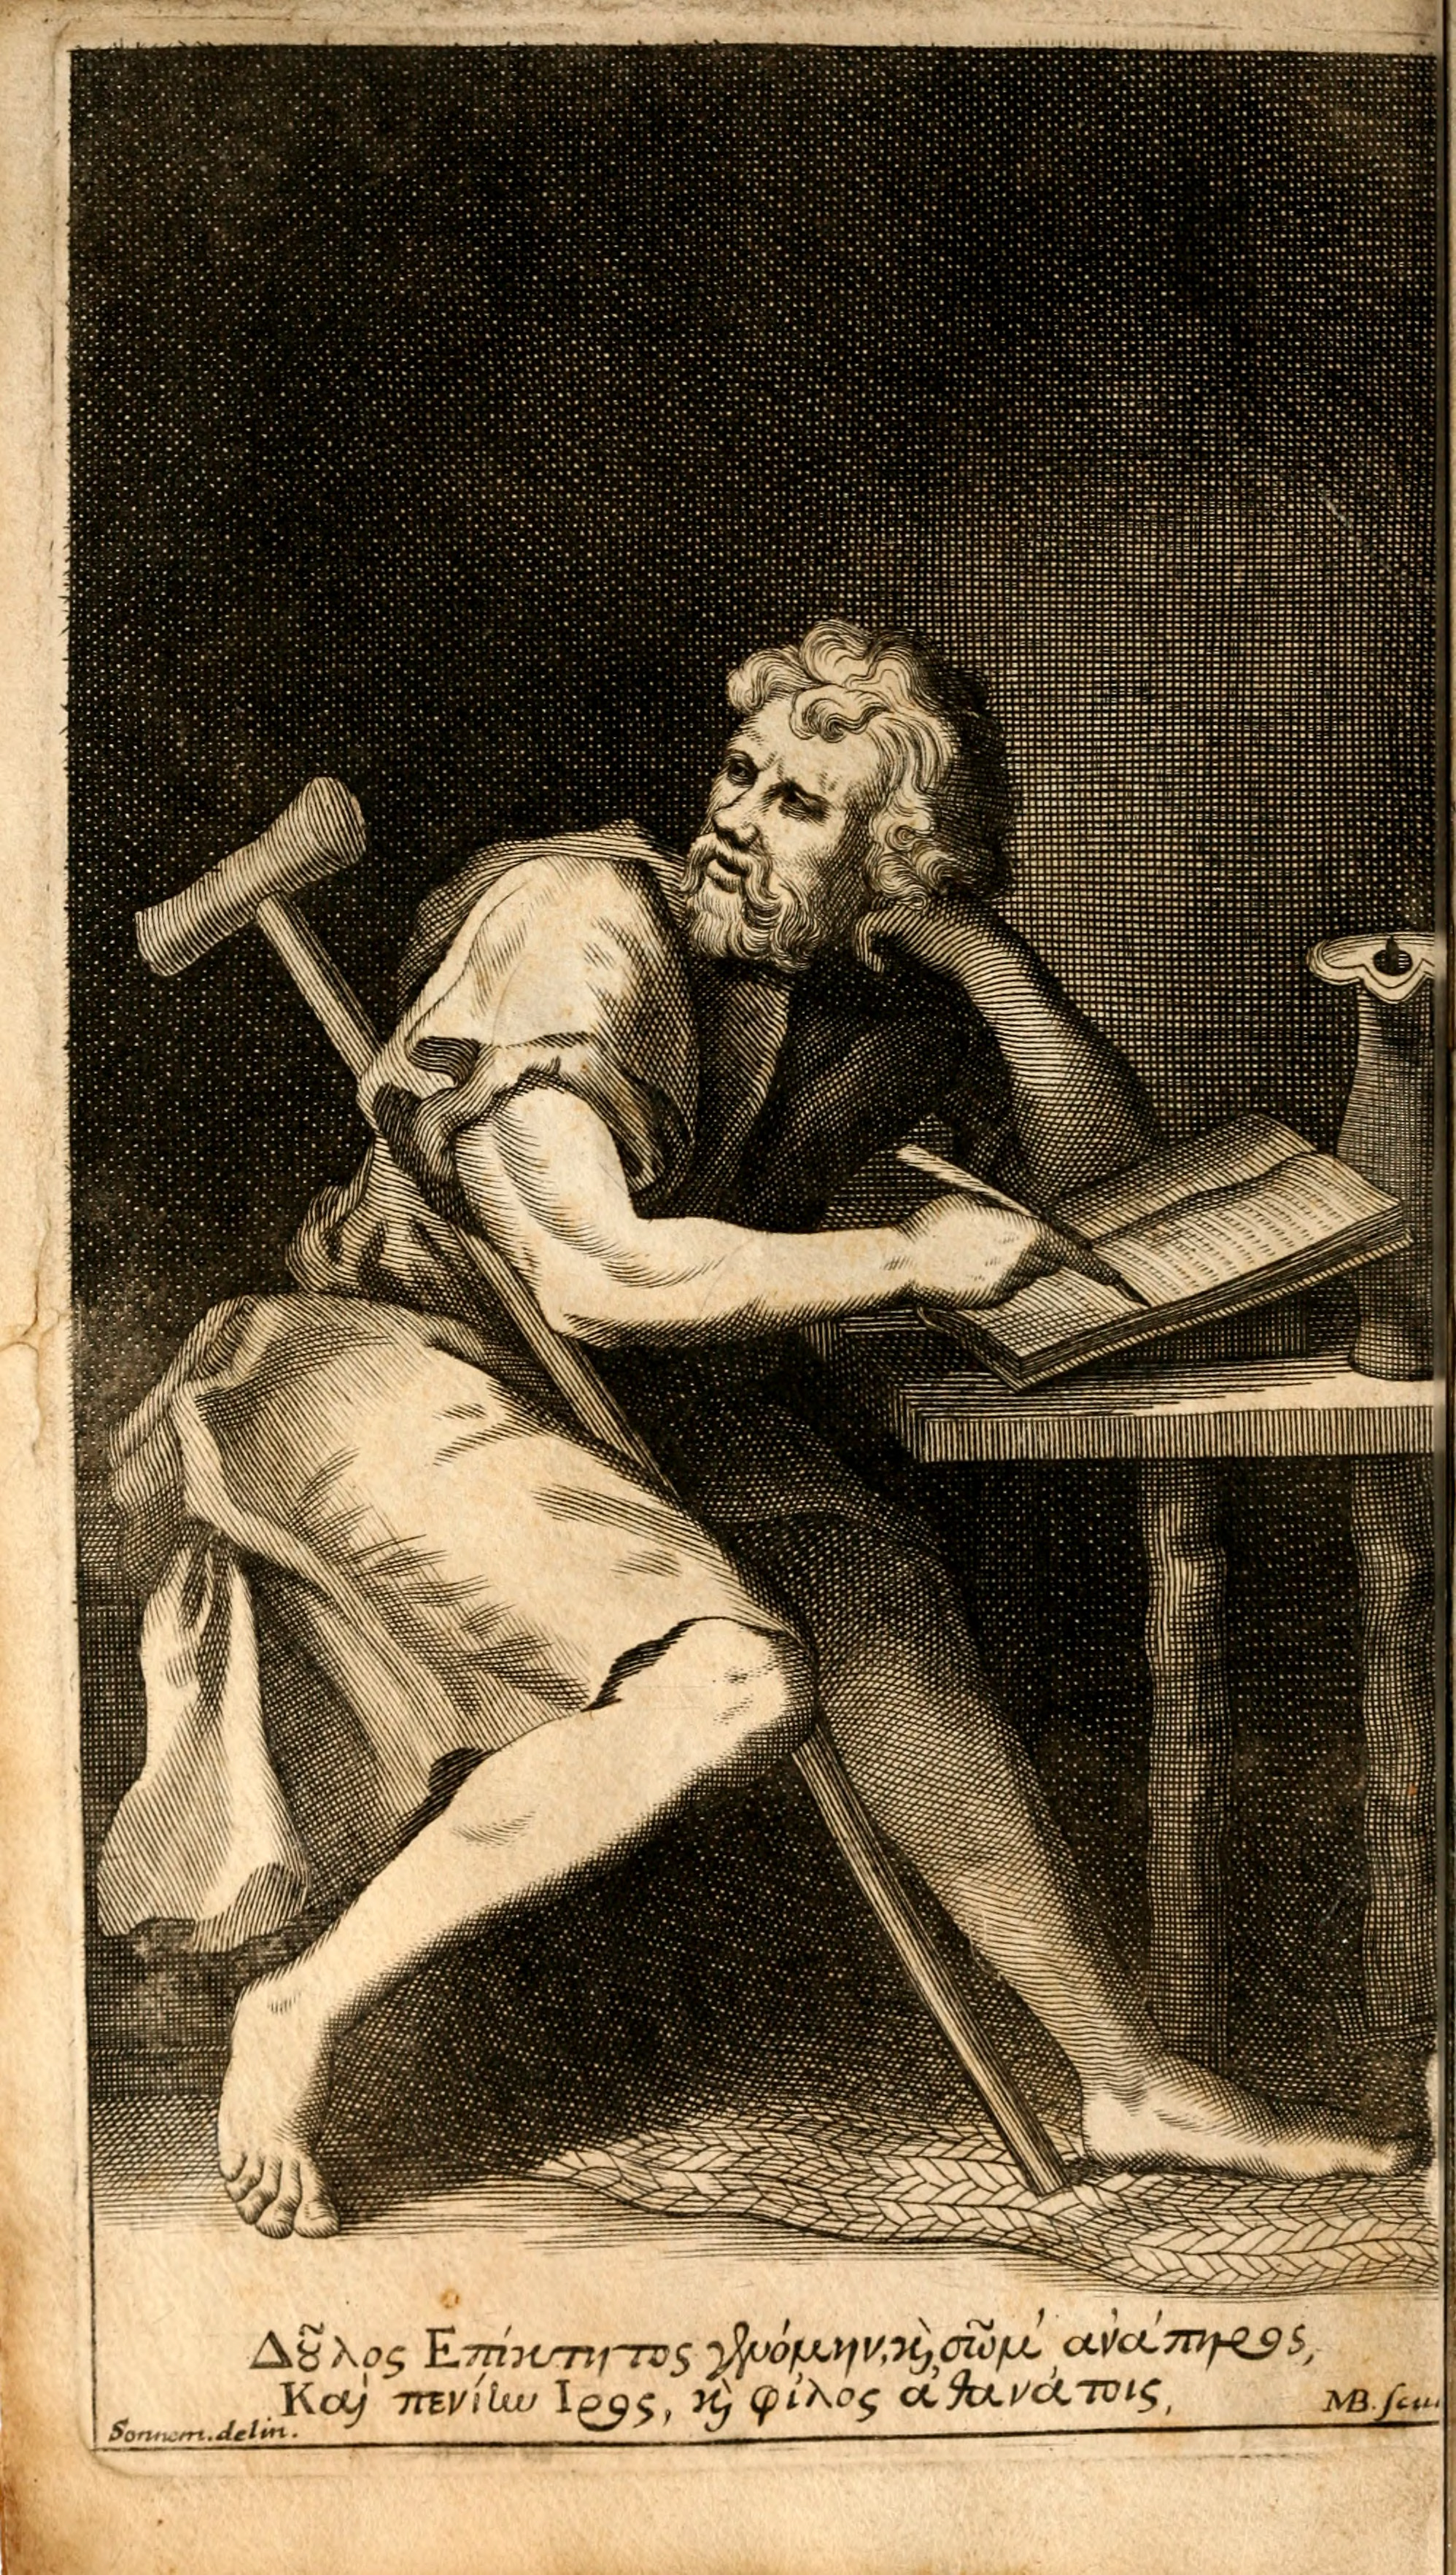 Artistic impression of Epictetus, including his crutch